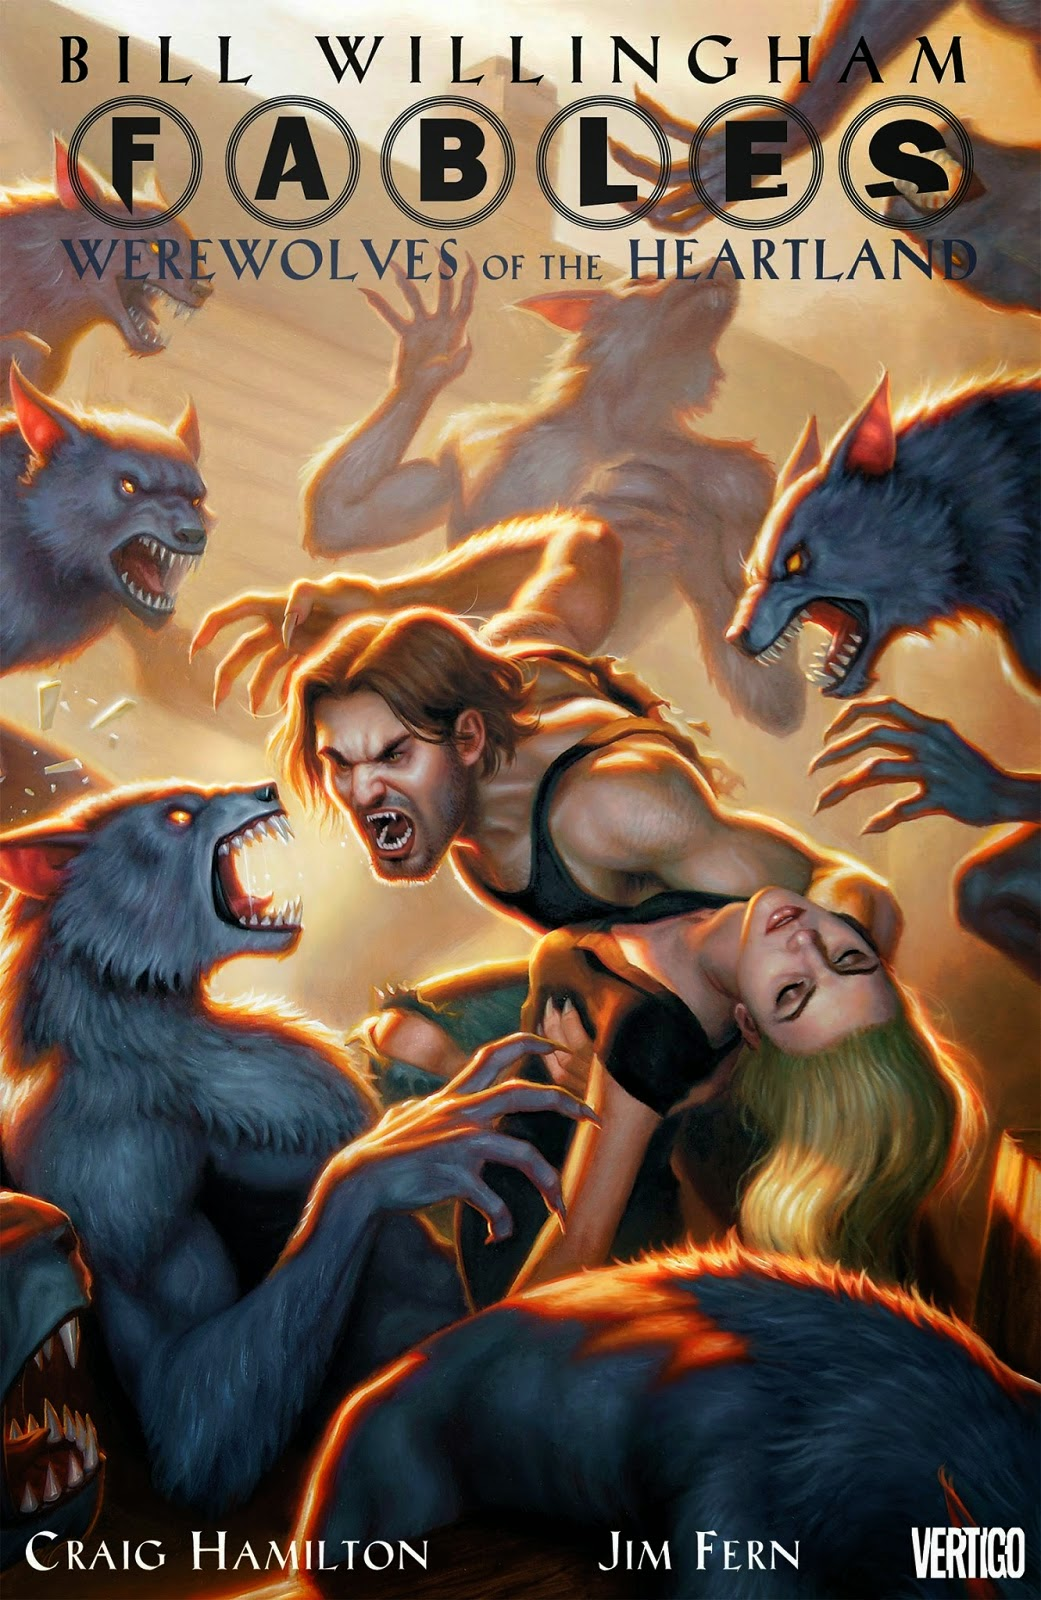 http://superheroesrevelados.blogspot.com.ar/2014/03/fables-werewolves-of-heartland.html